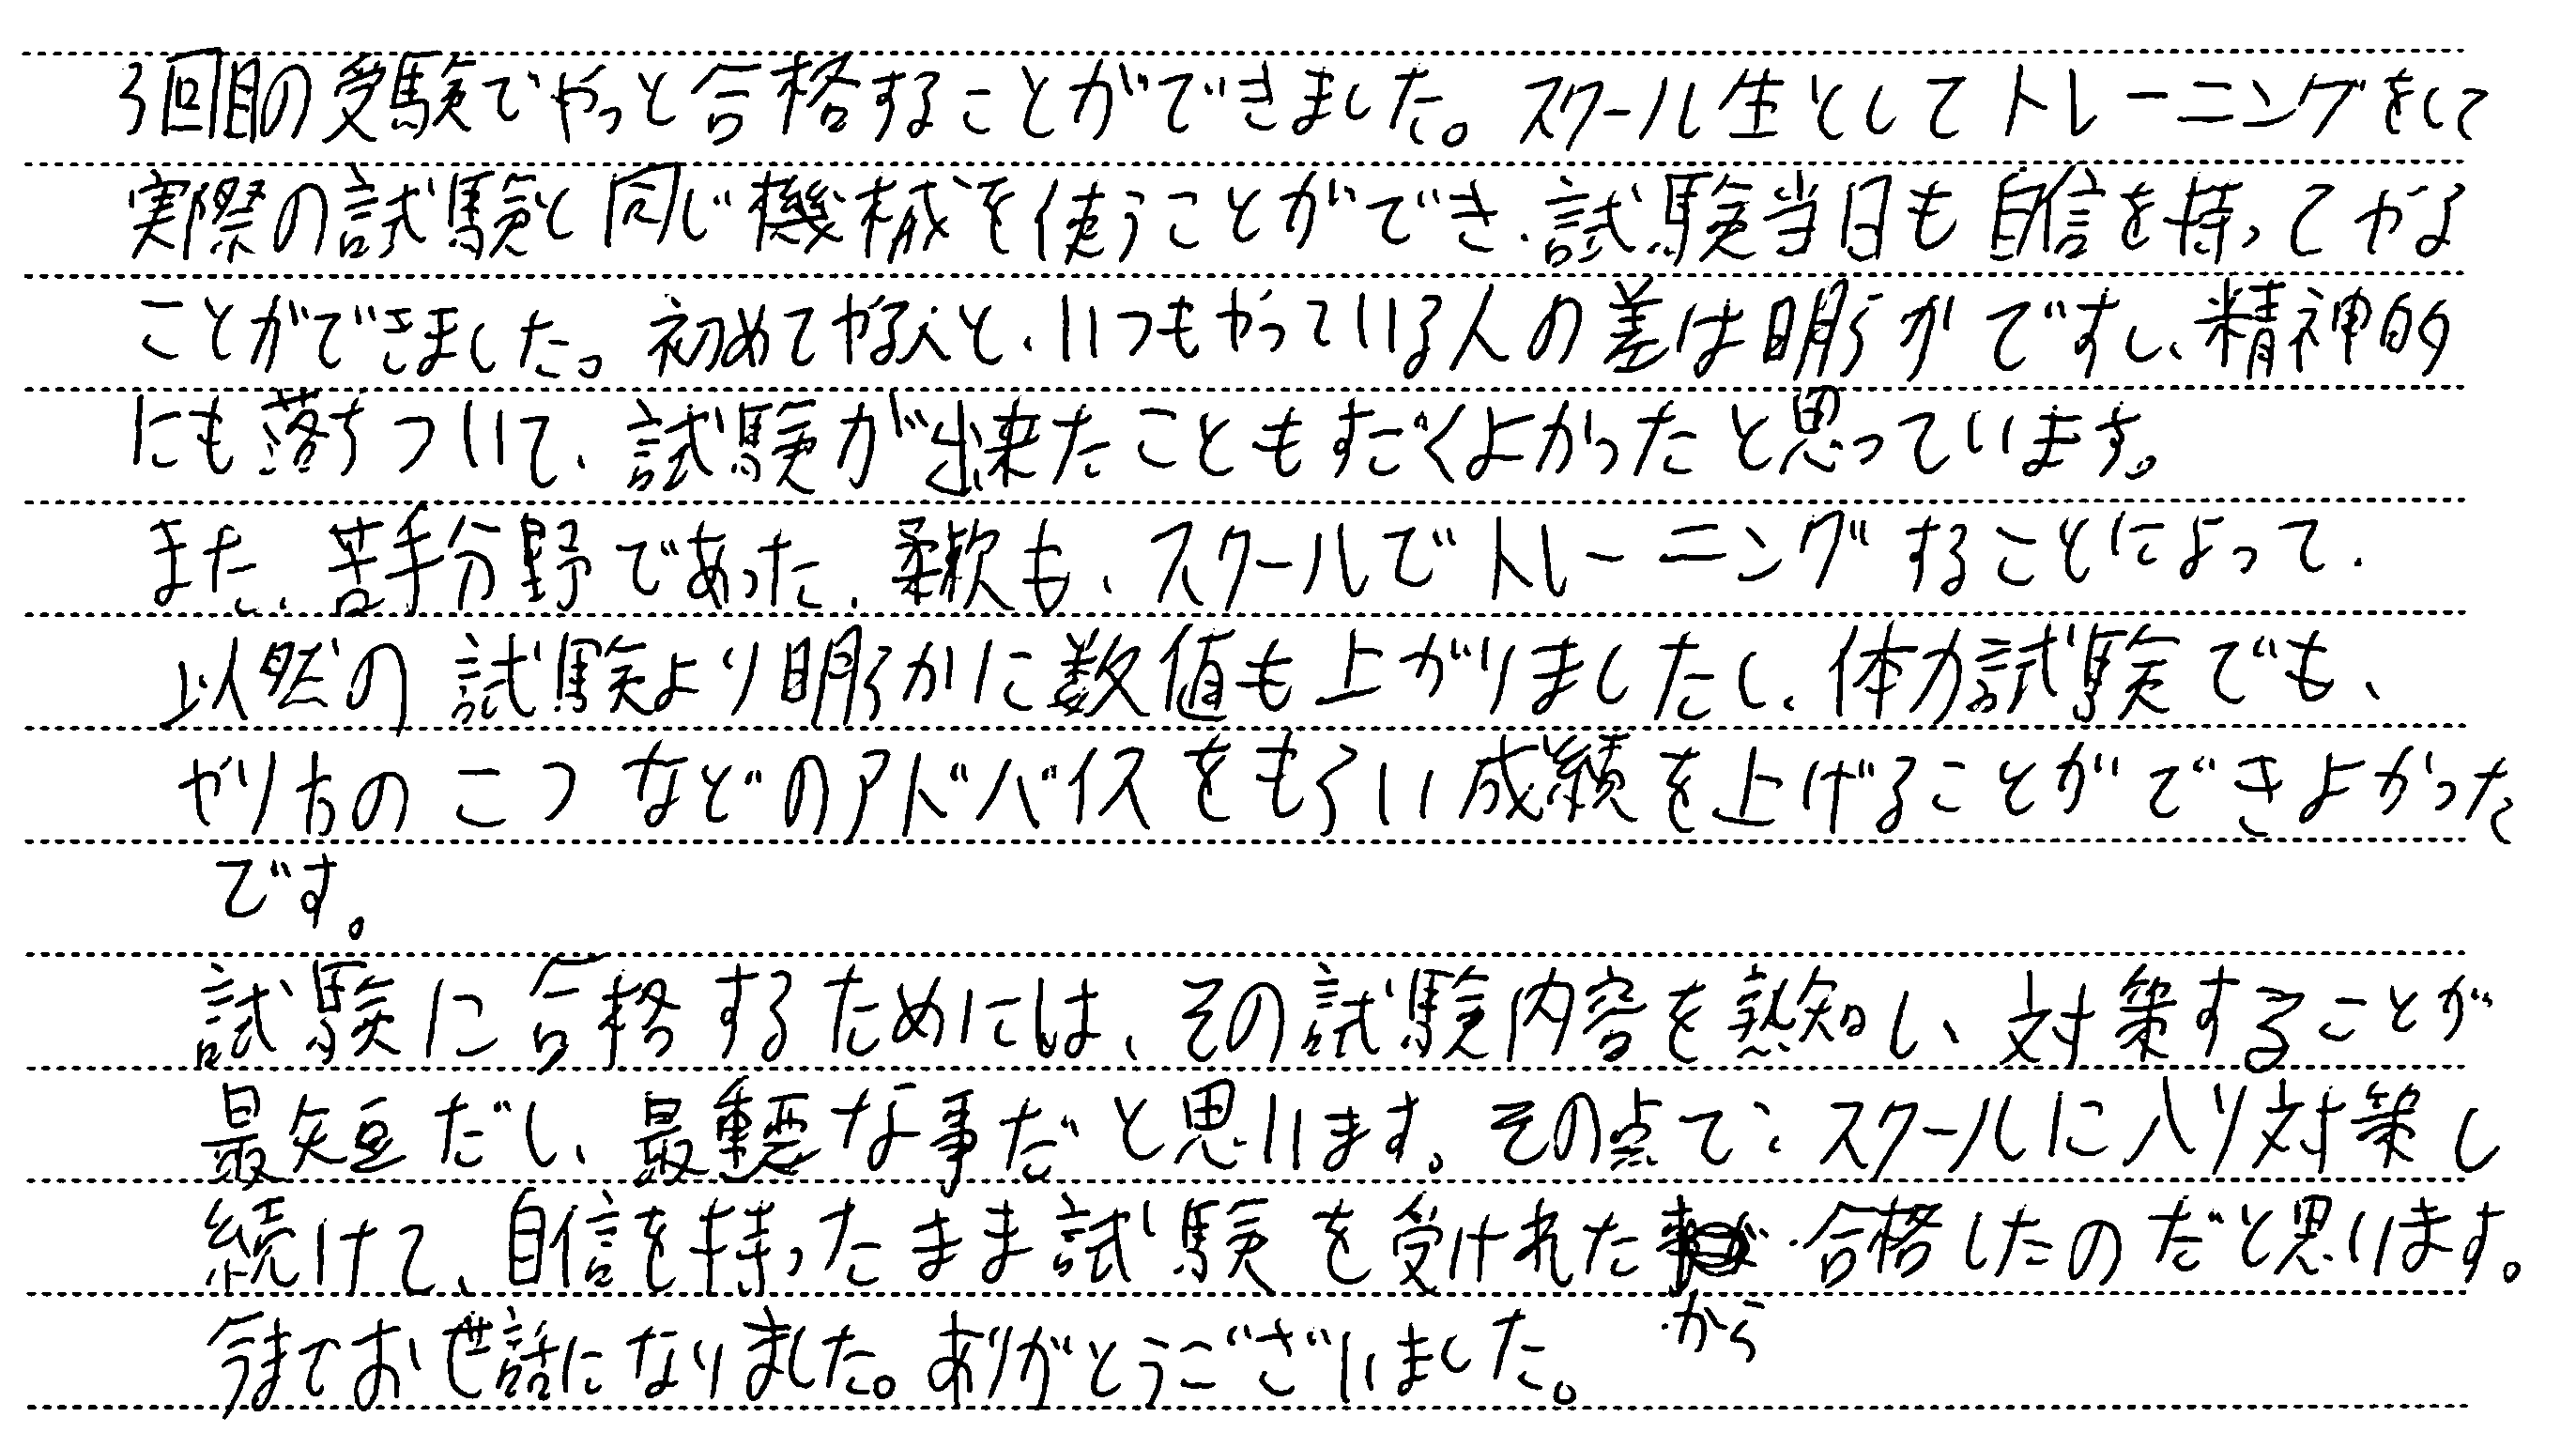 20130205130551251.png